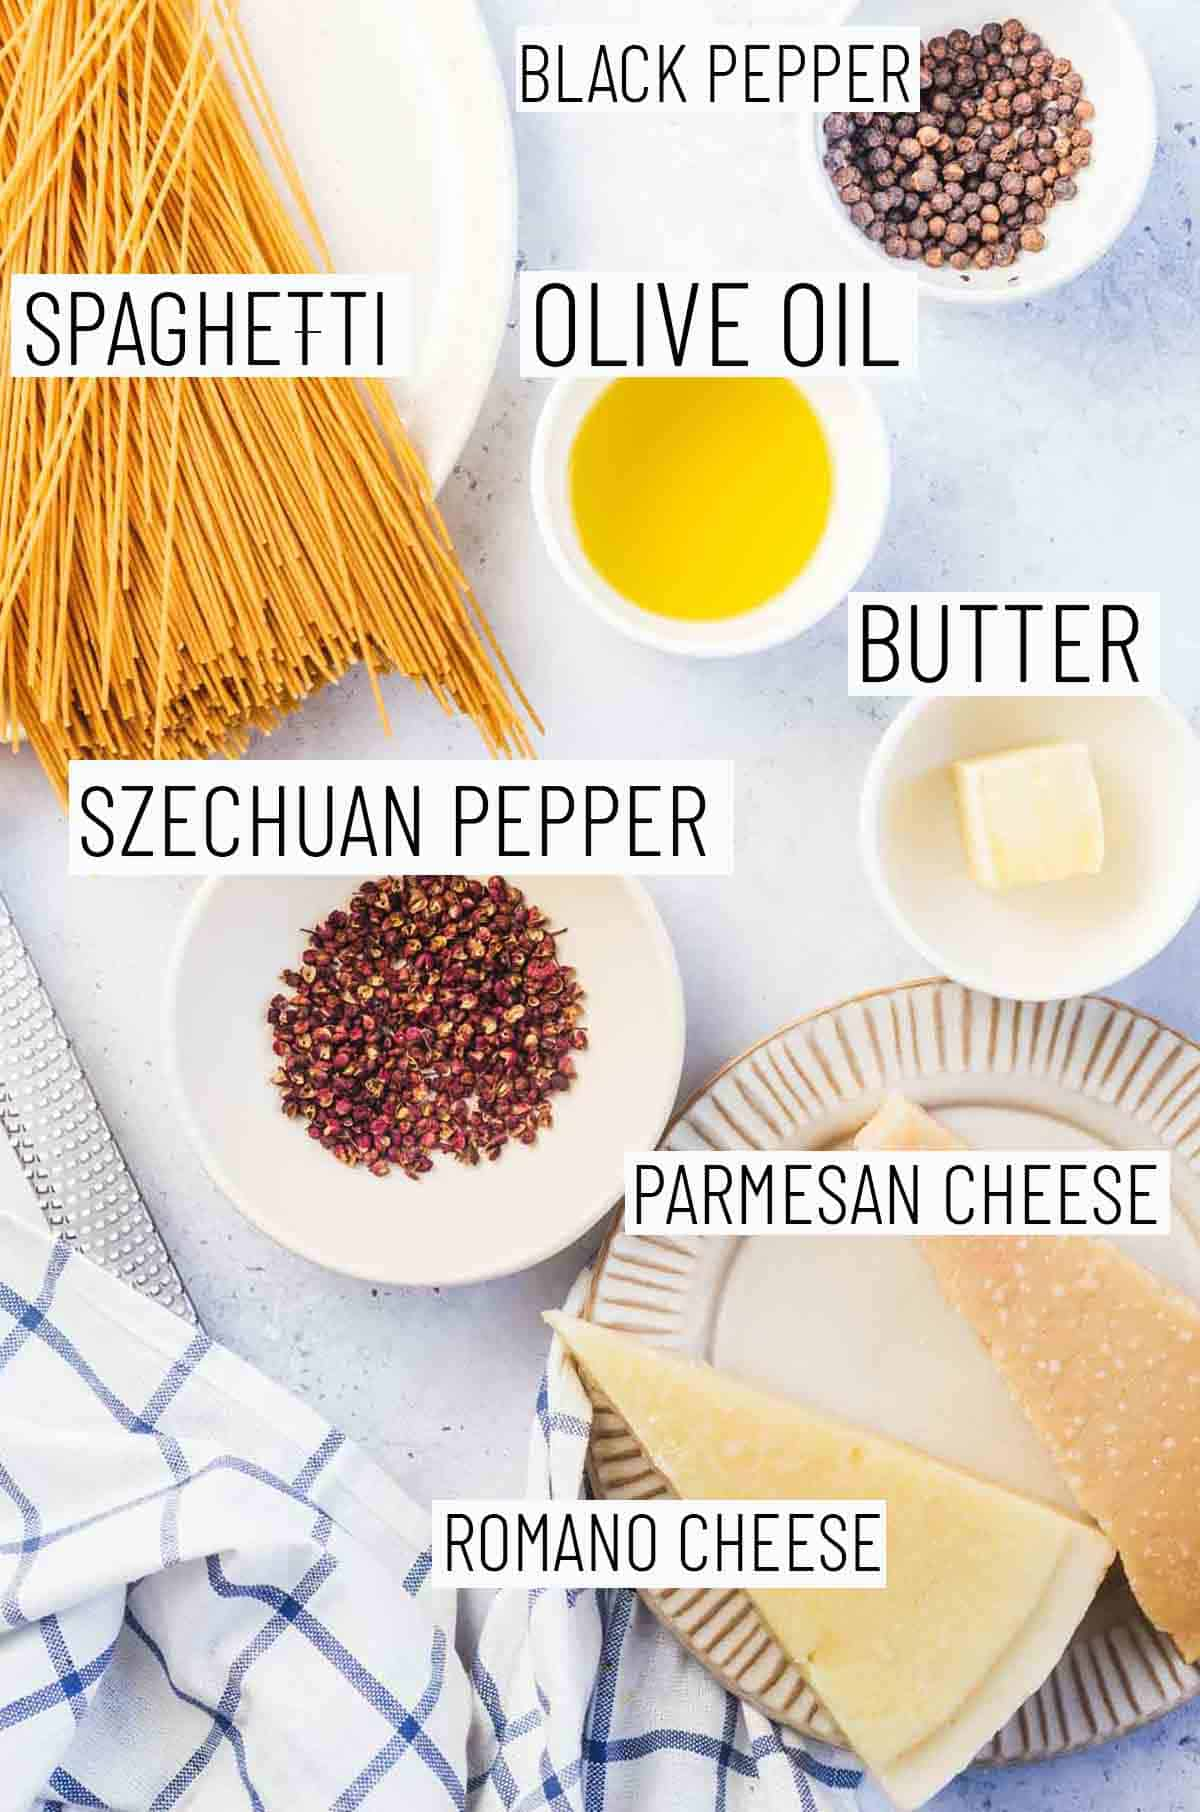 Flat lay image of recipe ingredients including black pepper, olive oil, butter, spaghetti, parmesan cheese, Romano cheese, and Szechuan pepper.